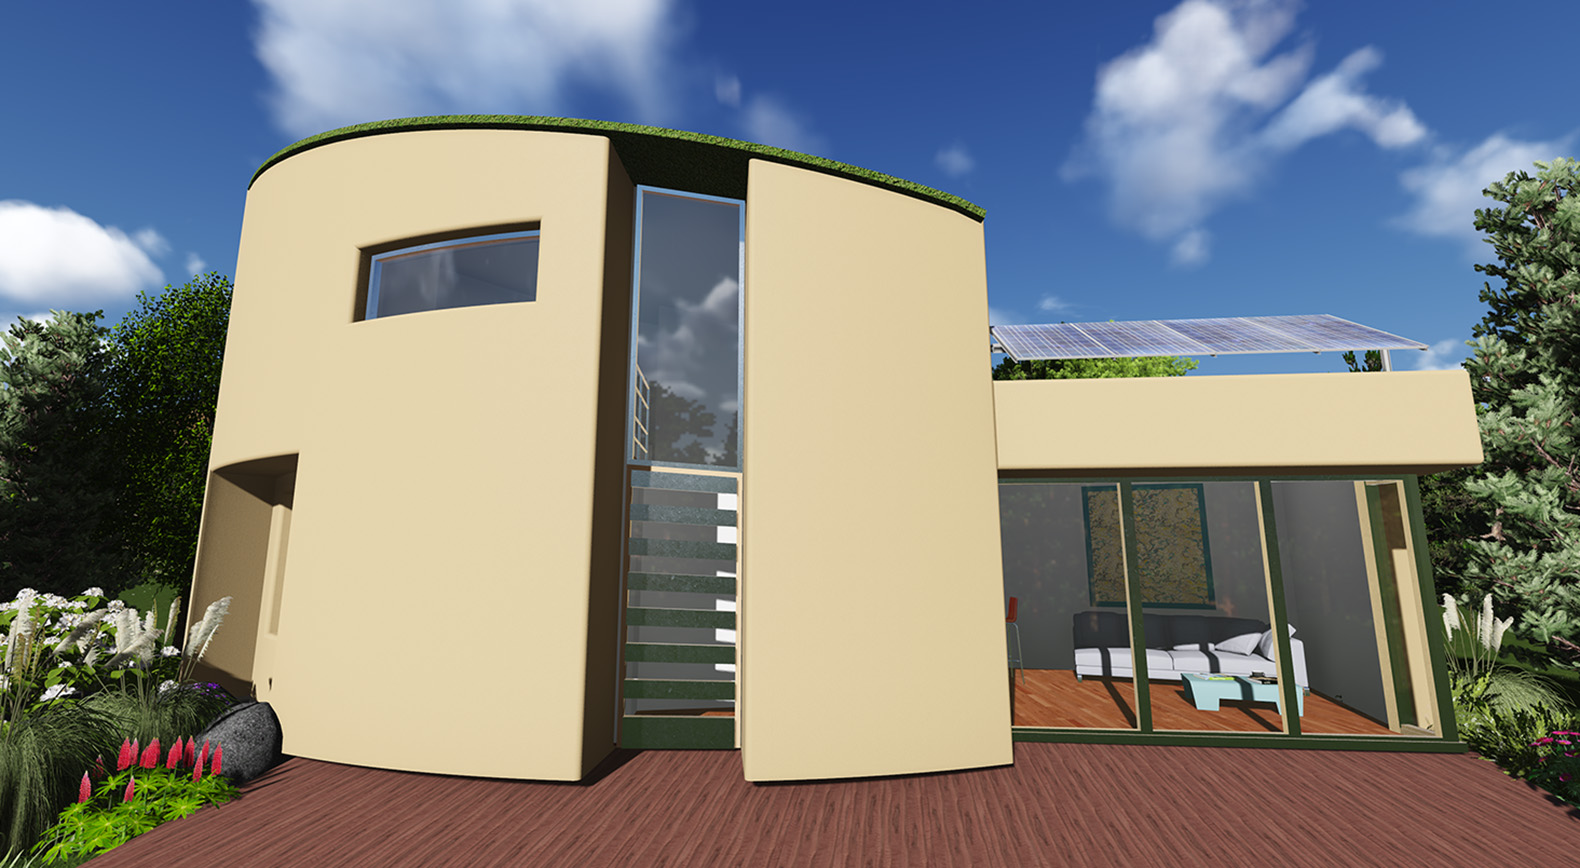 The Tiny Solar Powered Hemp Home With A Green Roof